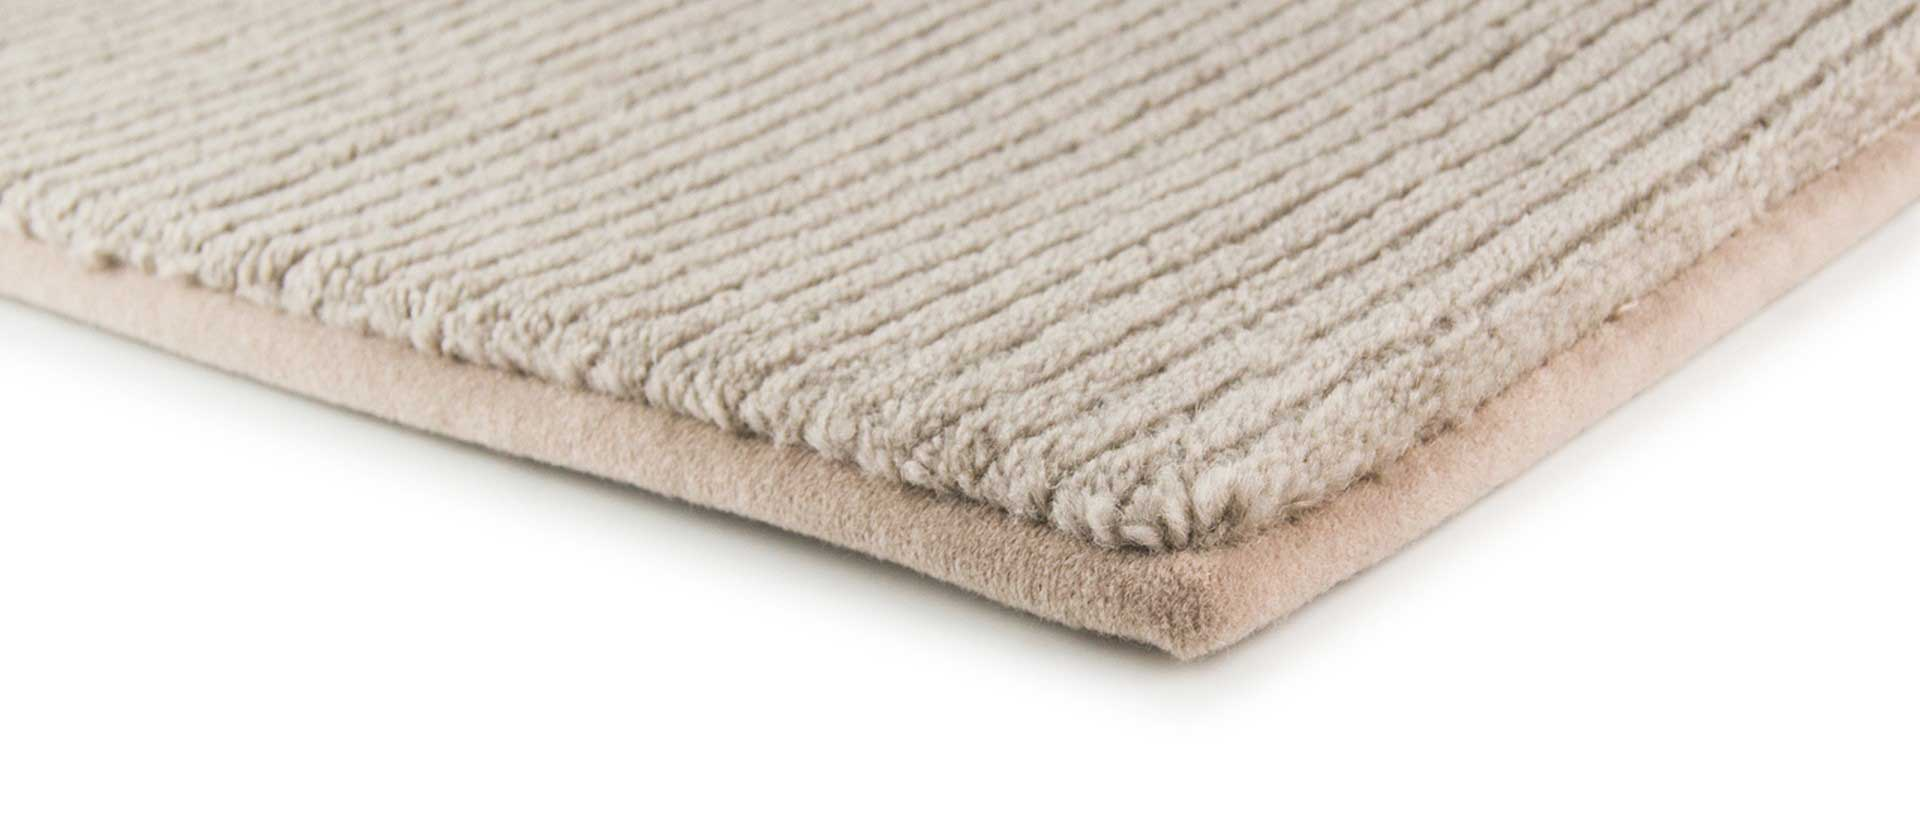 wool carpets wool carpet 100% natural HHKPQXW